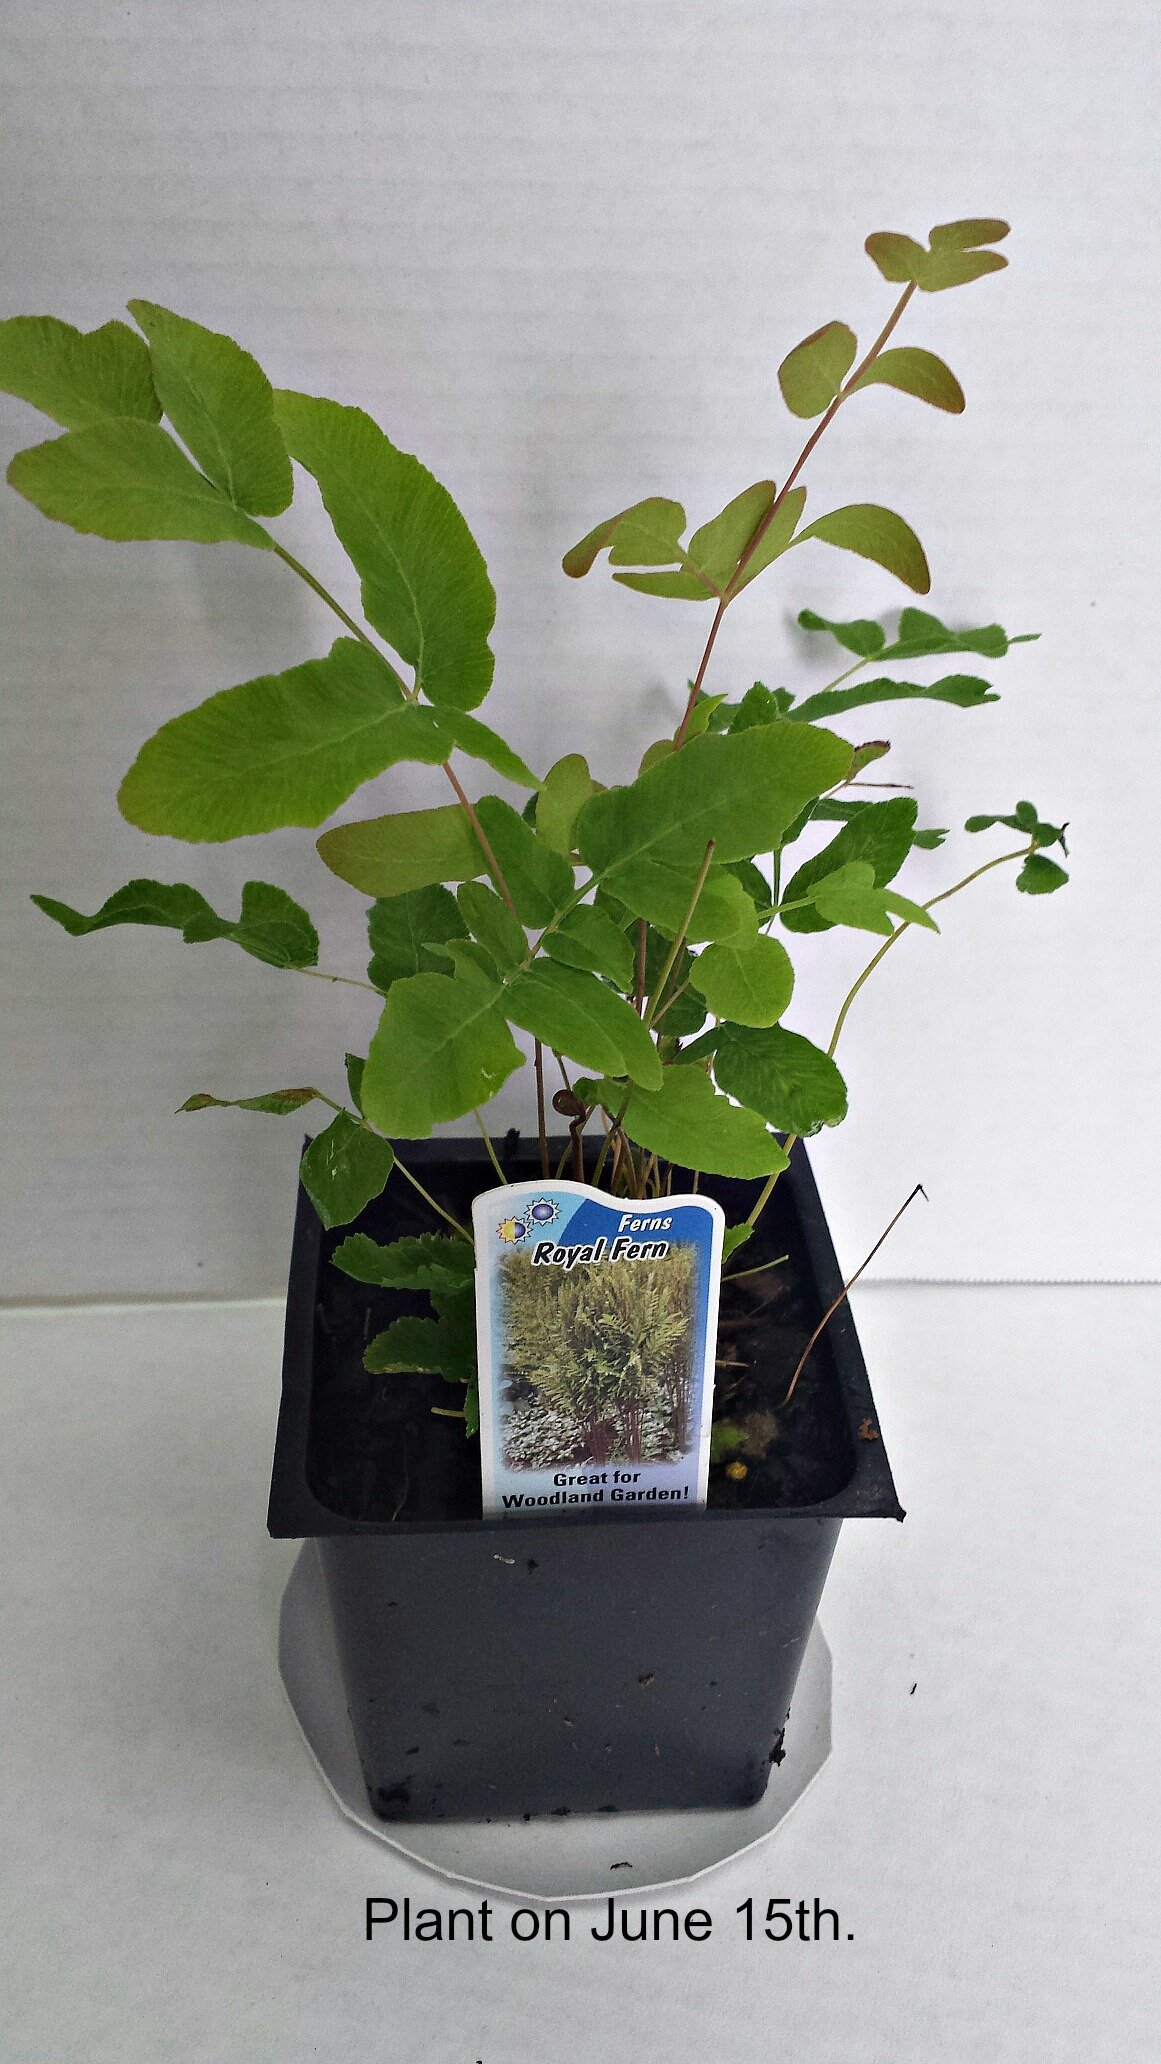 Royal Ferns Potted Plants (1 order contains 2 potted plants)